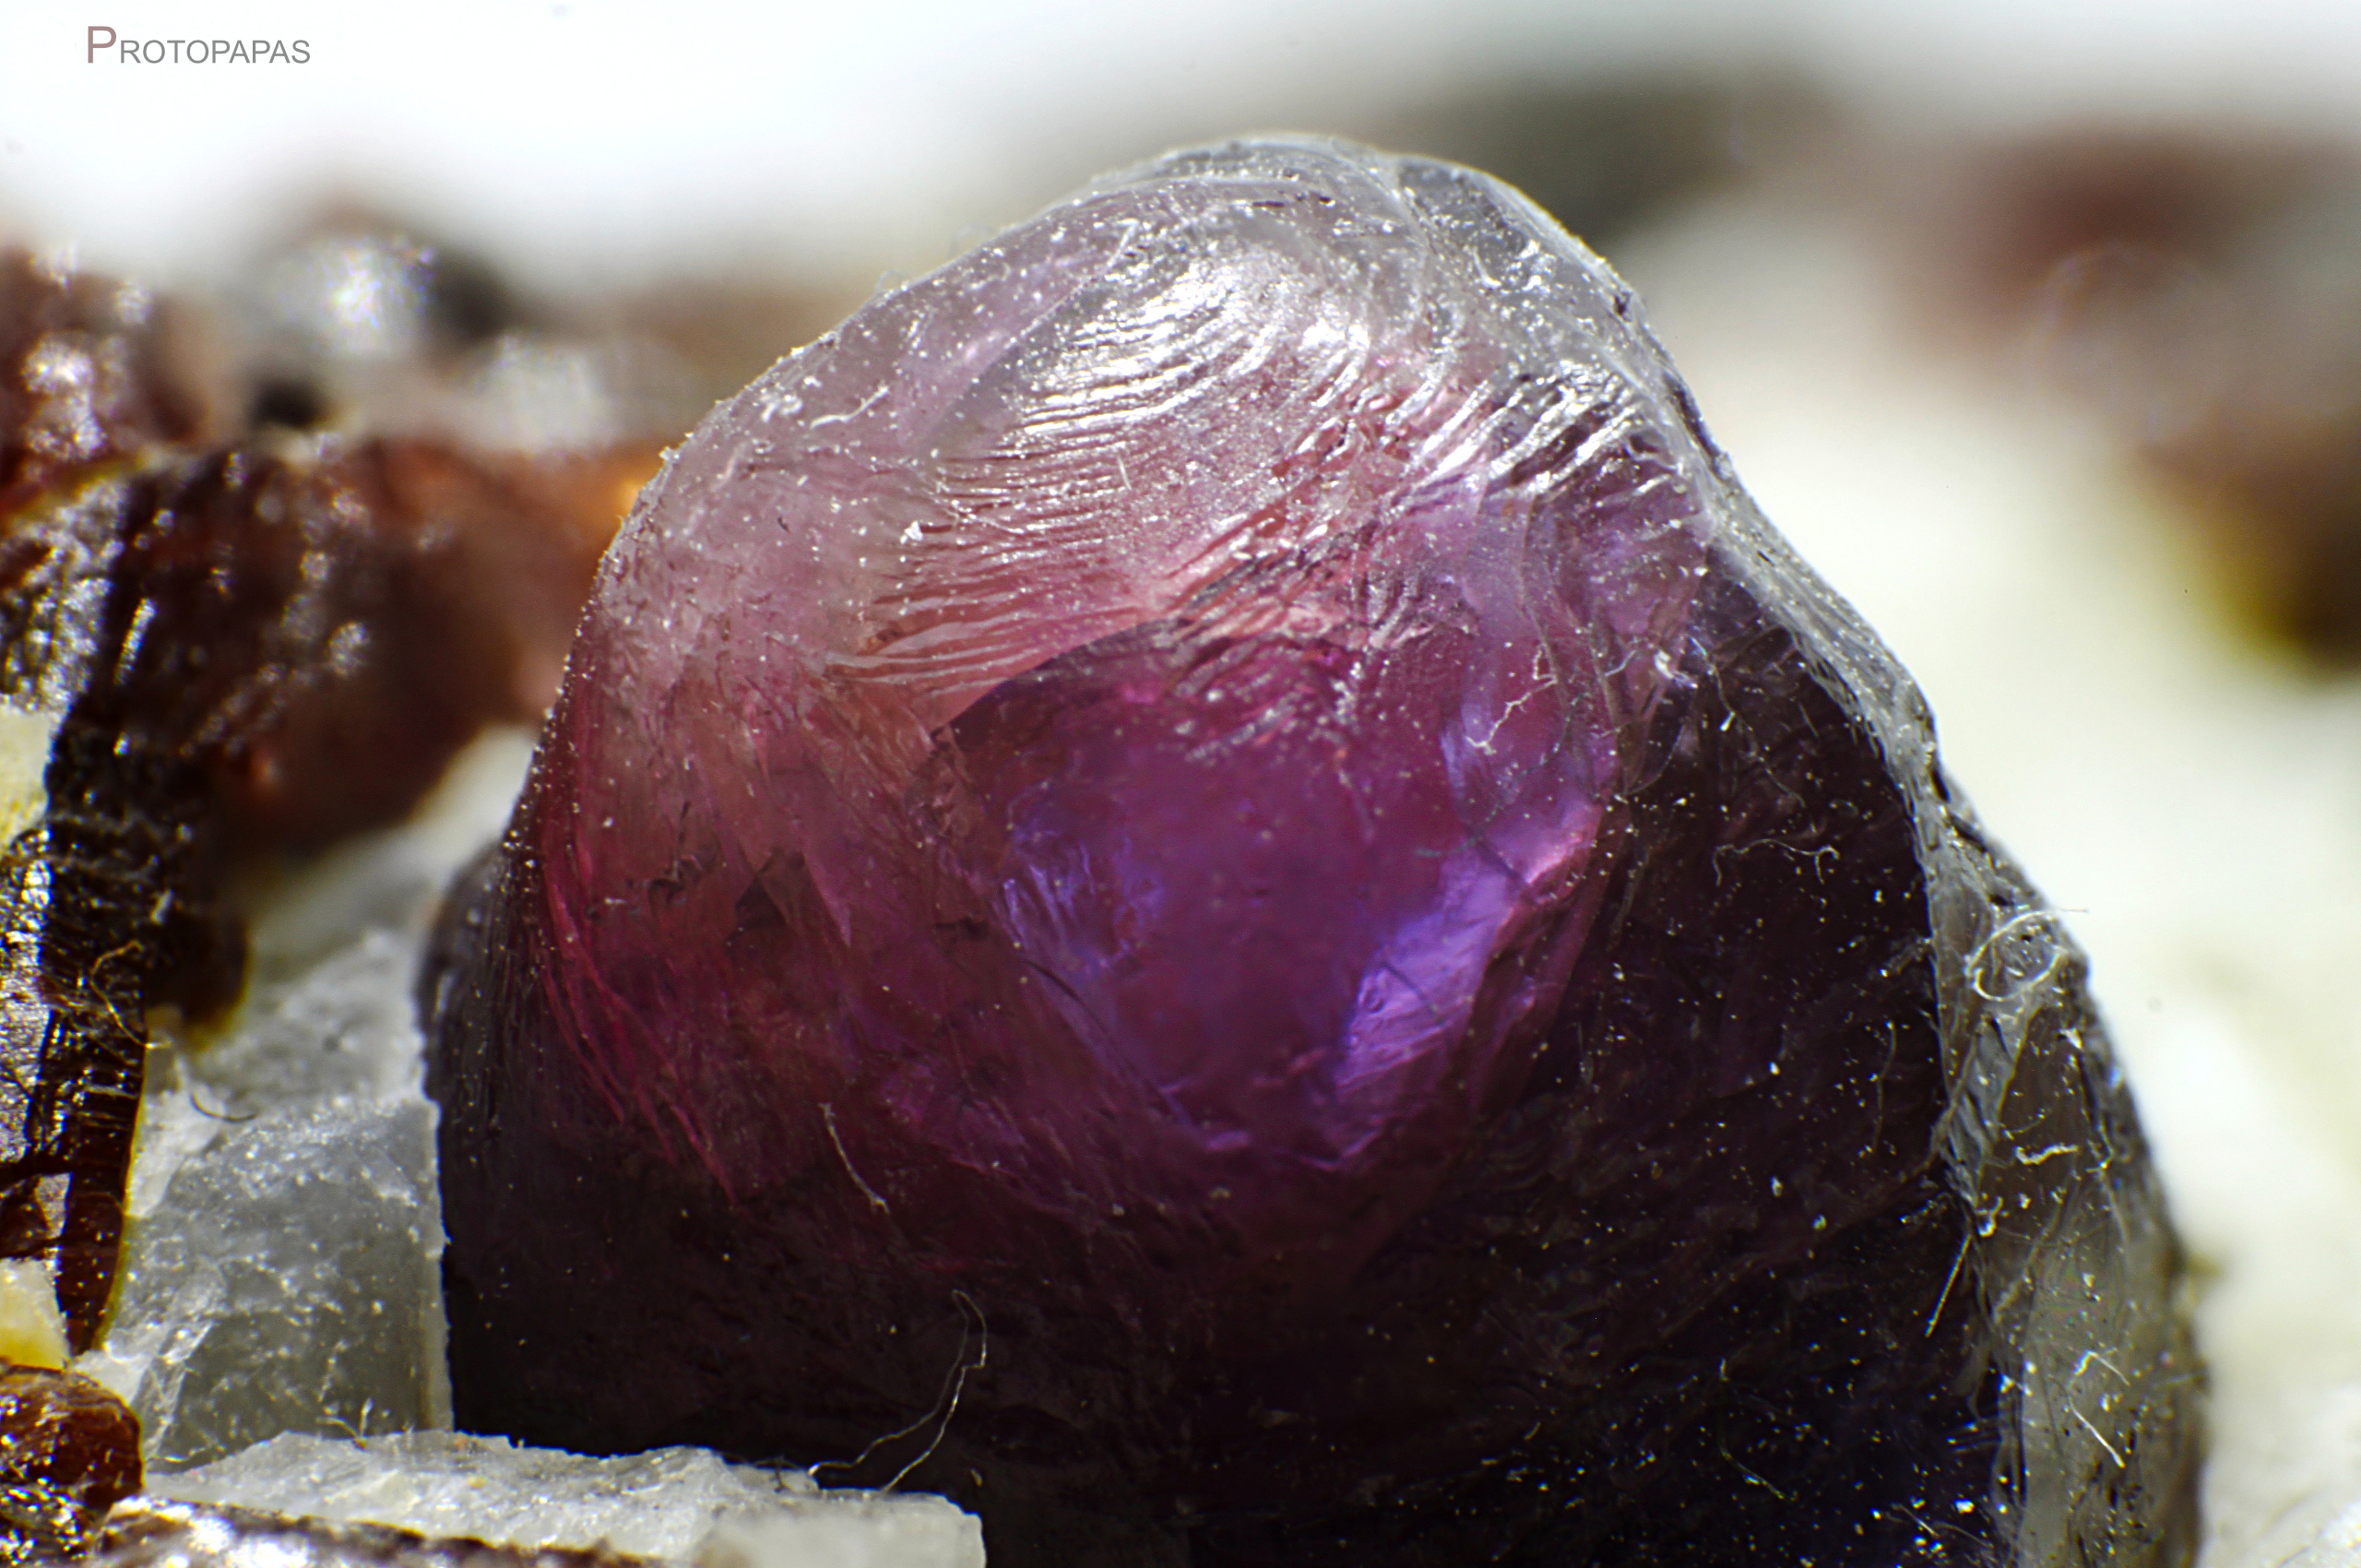 Corroded surface of a Sapphire from Zazafotsy quarry in Madagascar